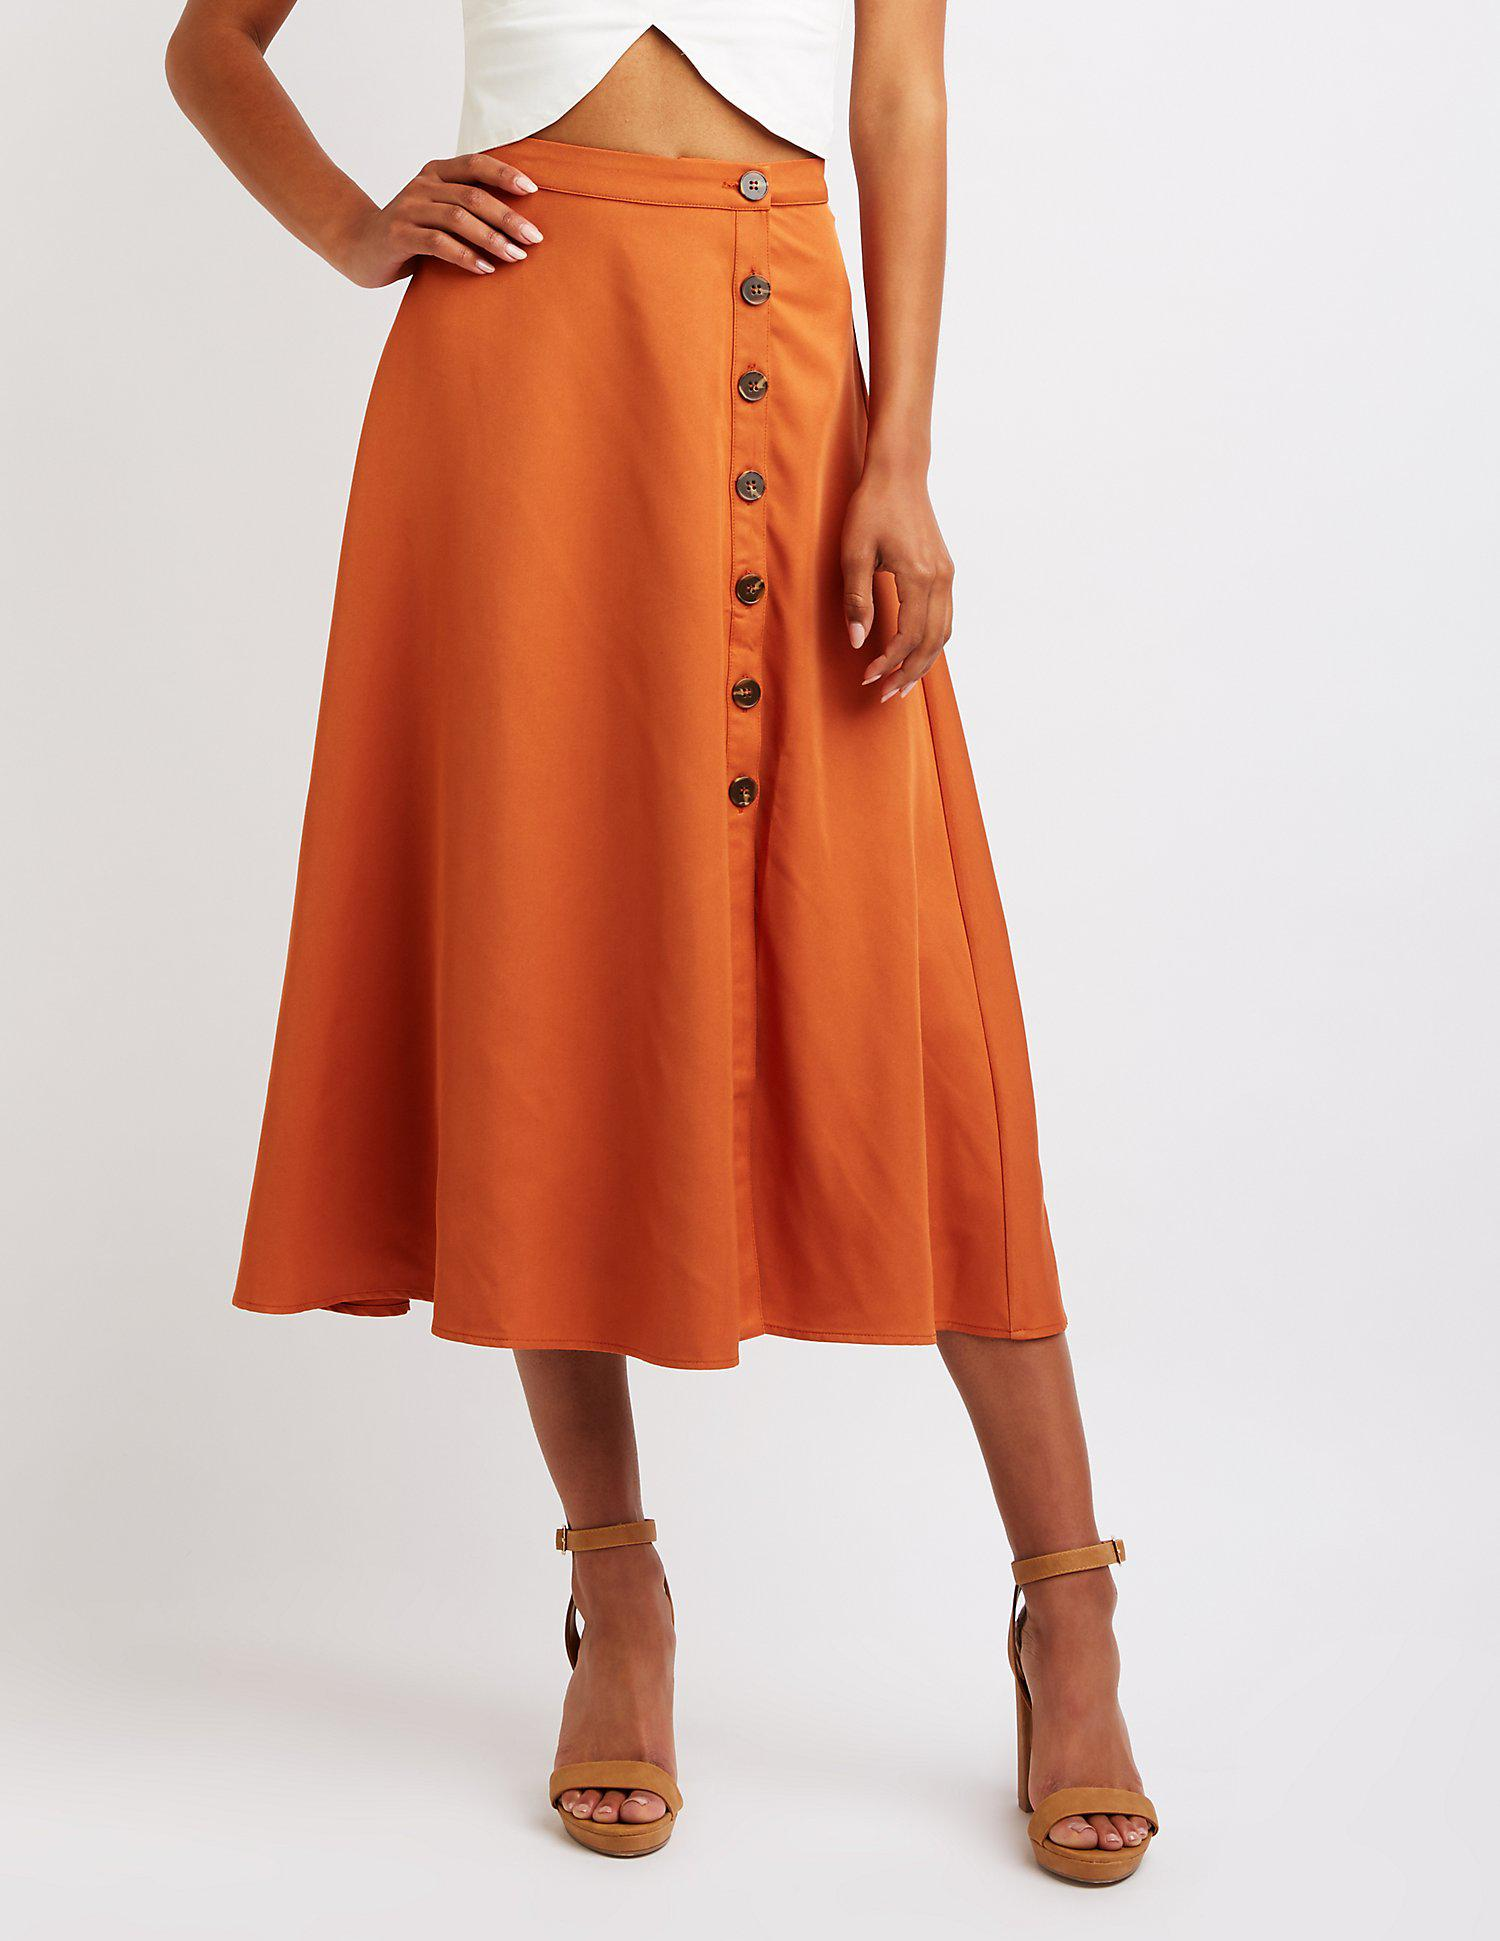 c562a90c7 Lyst - Charlotte Russe Button Up Midi Skirt in Orange